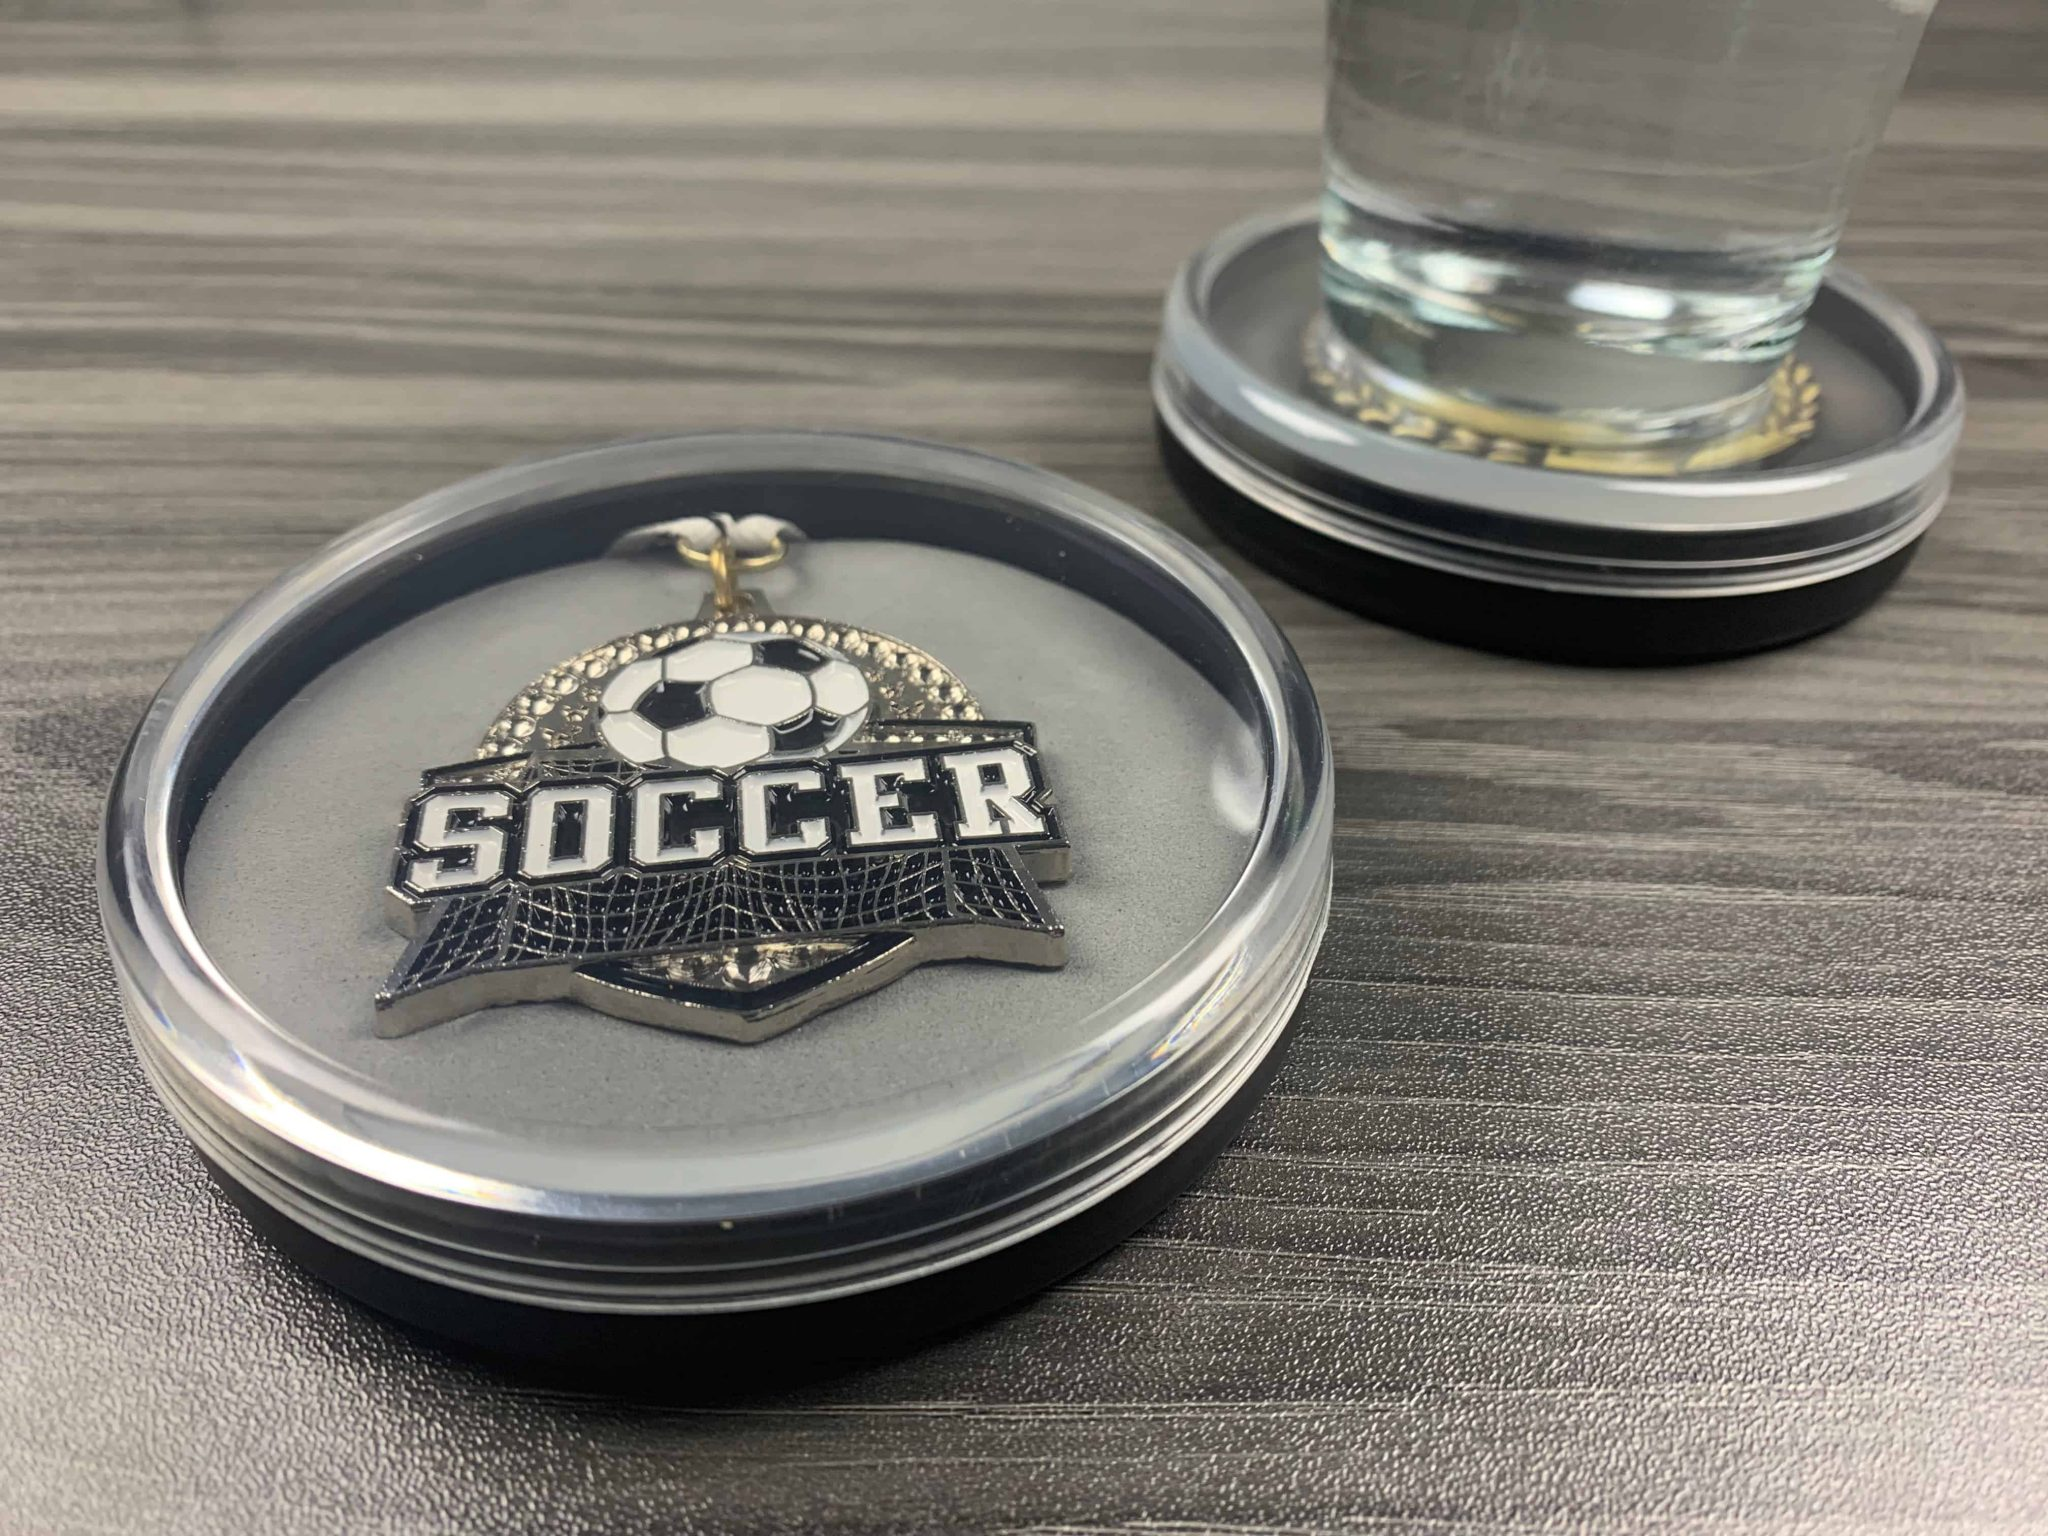 Soccer Medal Display Case Coaster | How to Display Your Soccer Medals